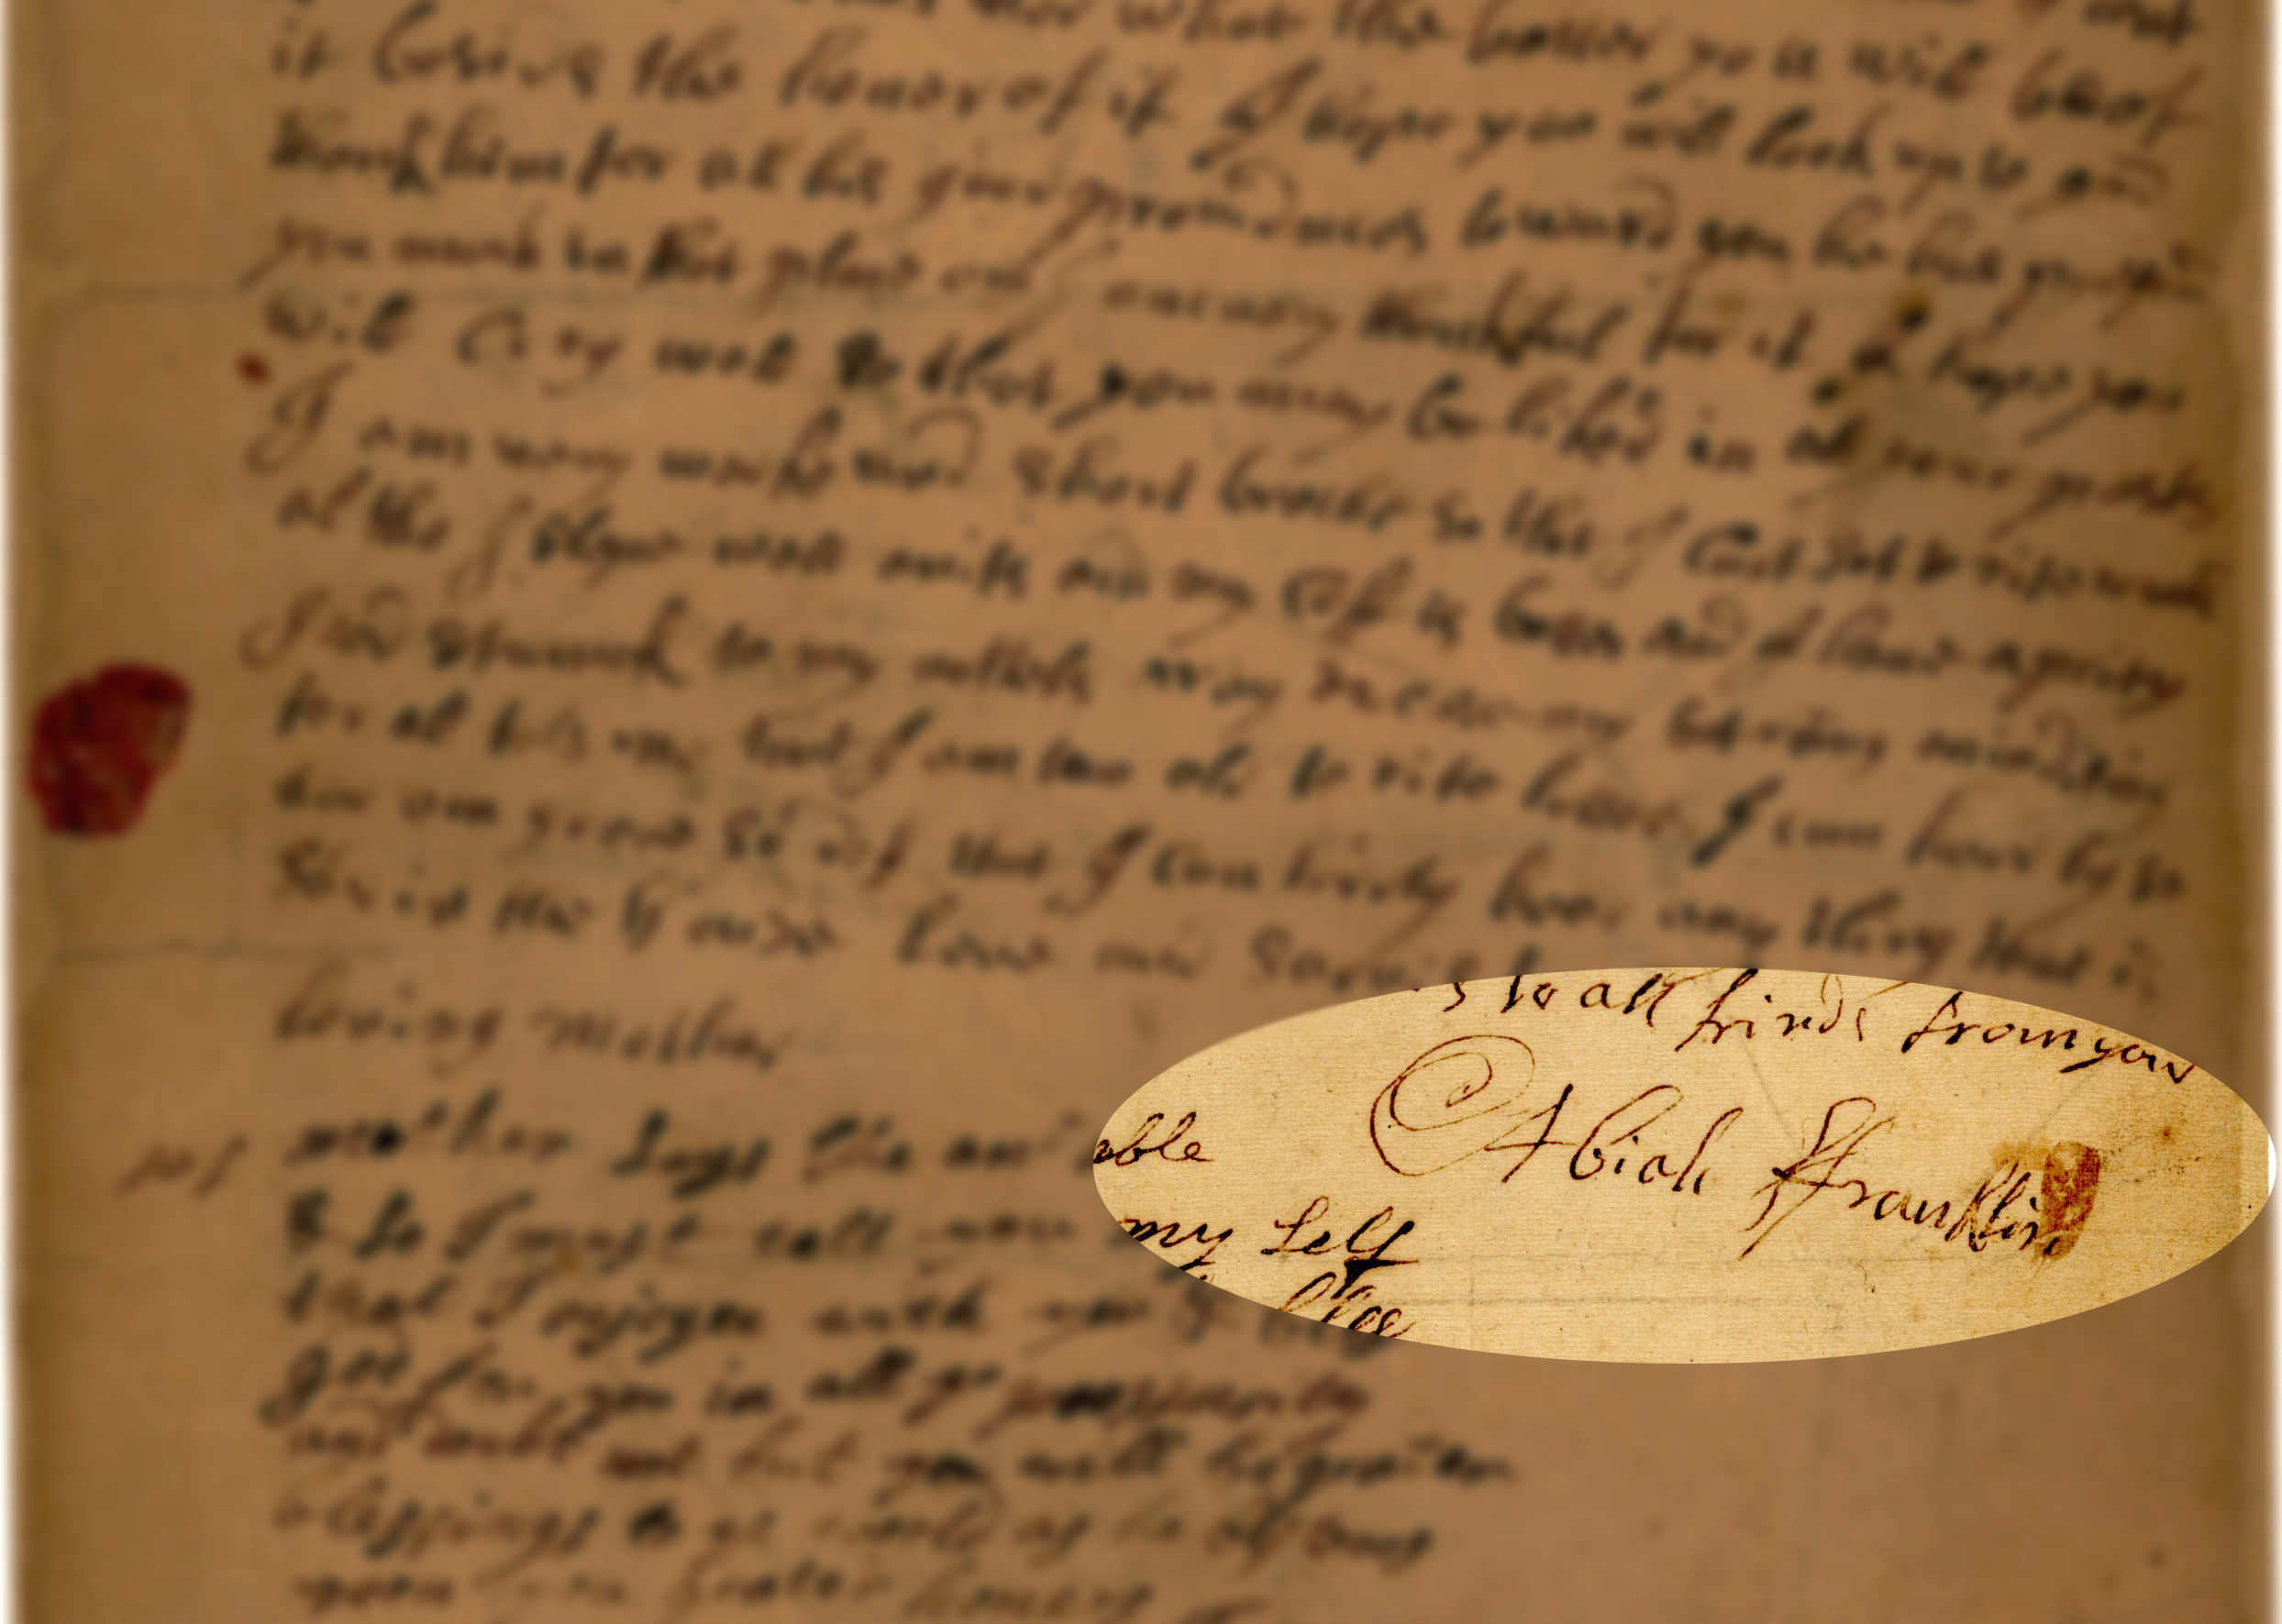 letter with signature of Abiah Franklin